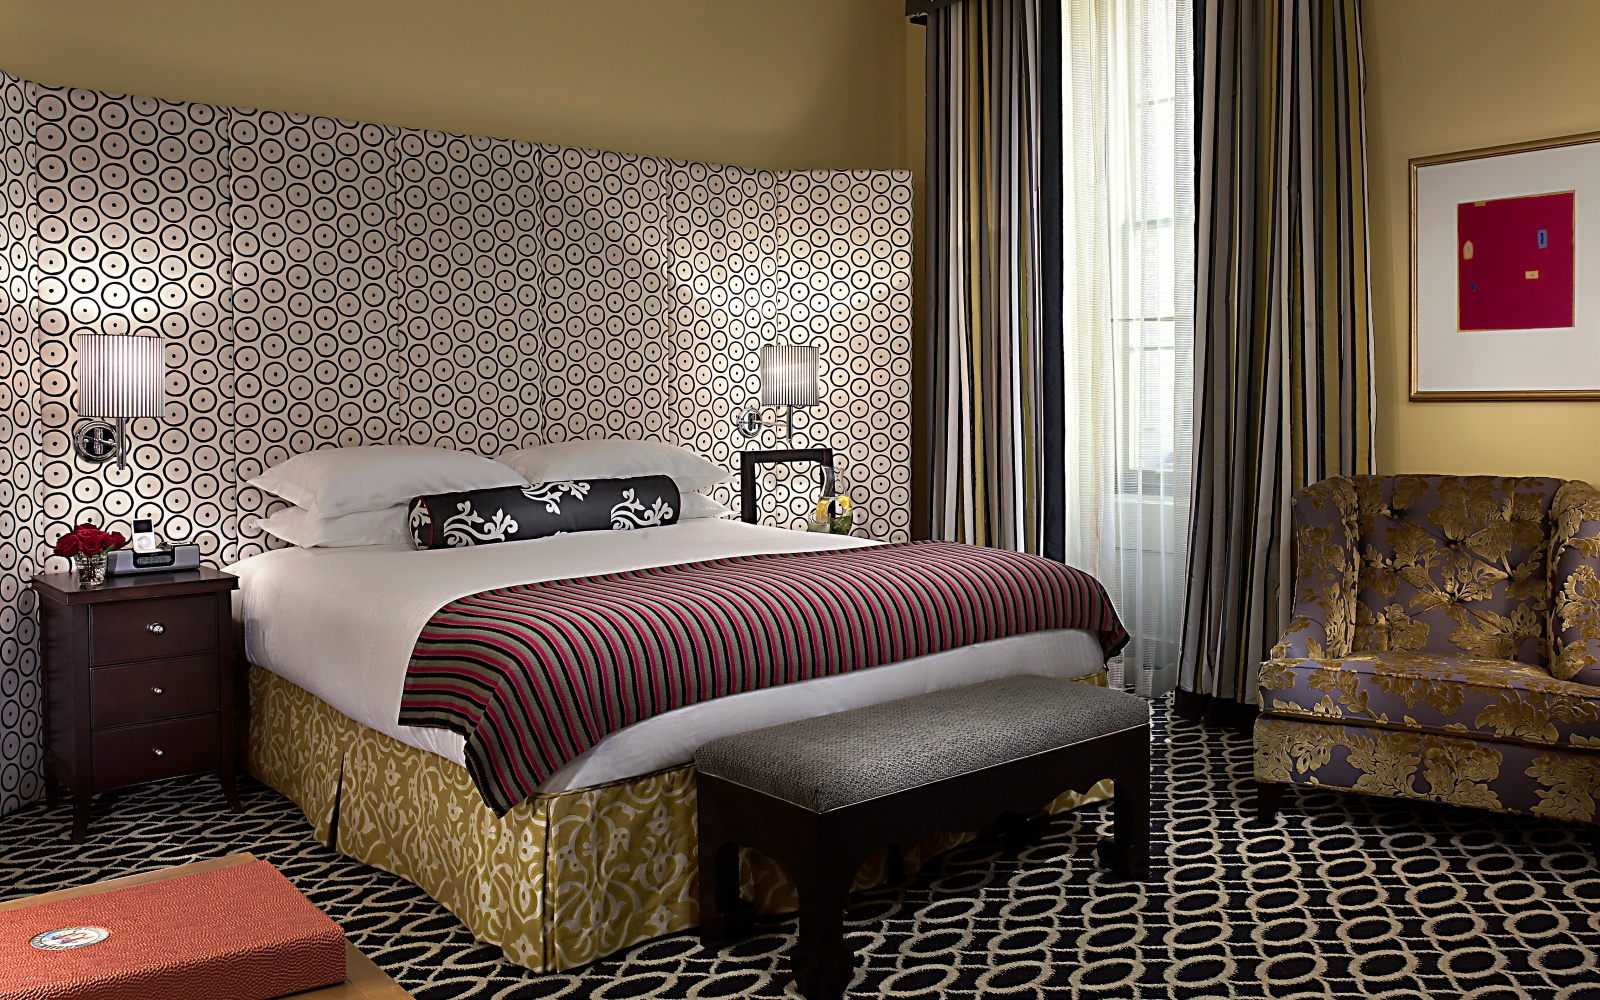 Top hotels for solo travelers travel leisure for Hotel monaco decor